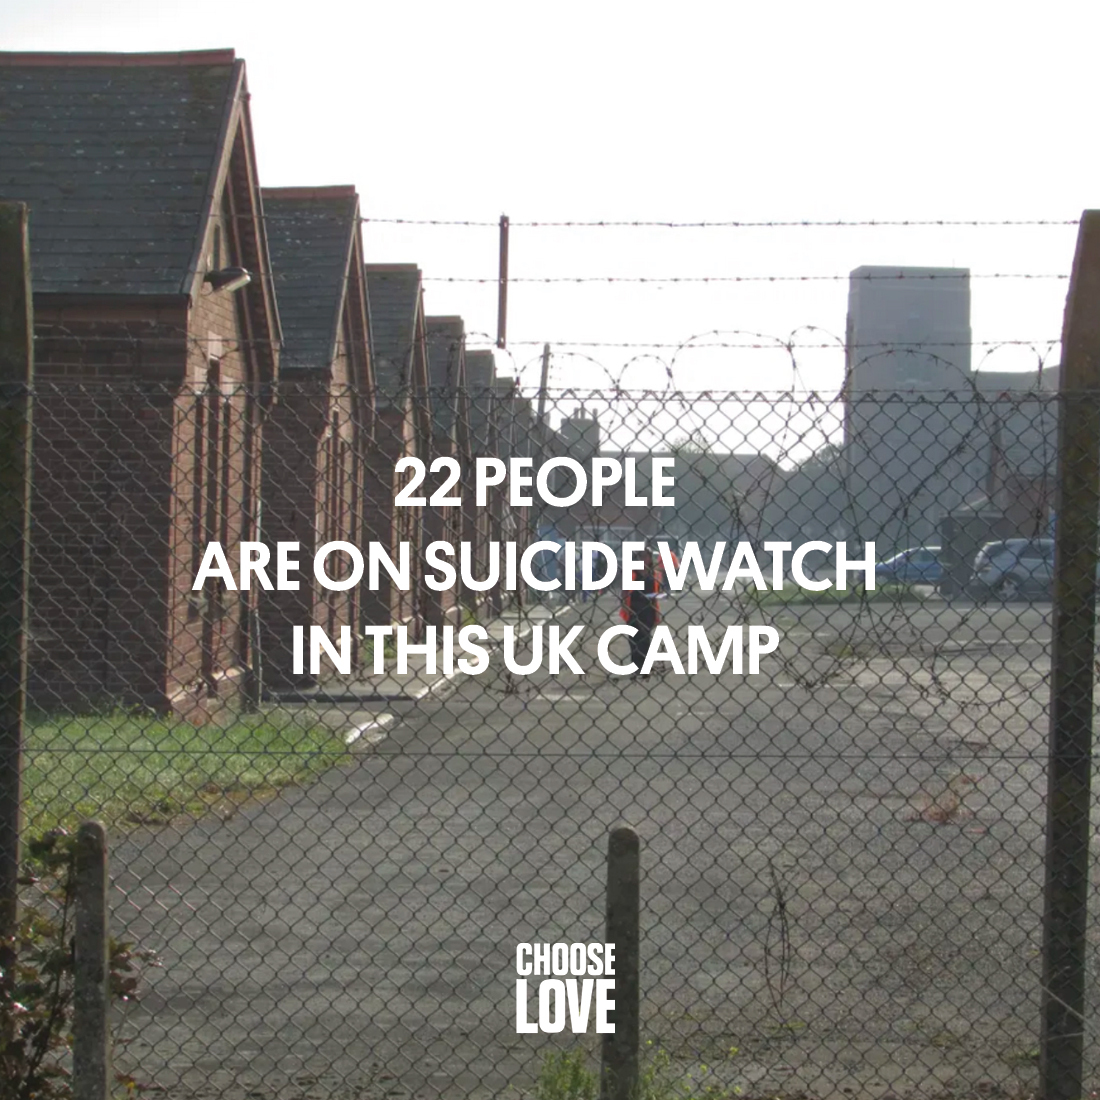 Napier Barracks in Kent has been used to house around 400 people seeking asylum.  Not only are 22 people on suicide watch, but now over a quarter of the entire population of the facility has contracted COVID.  This is scandal, but not a surprise.   1/3